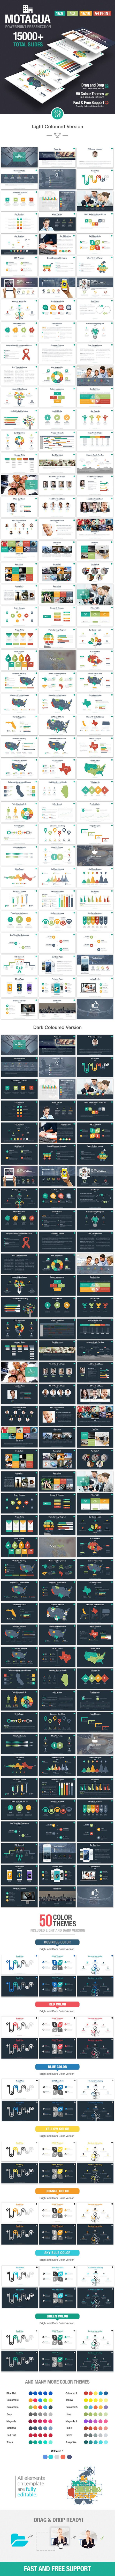 Motagua - Multipurpose PowerPoint Template - Business PowerPoint Templates